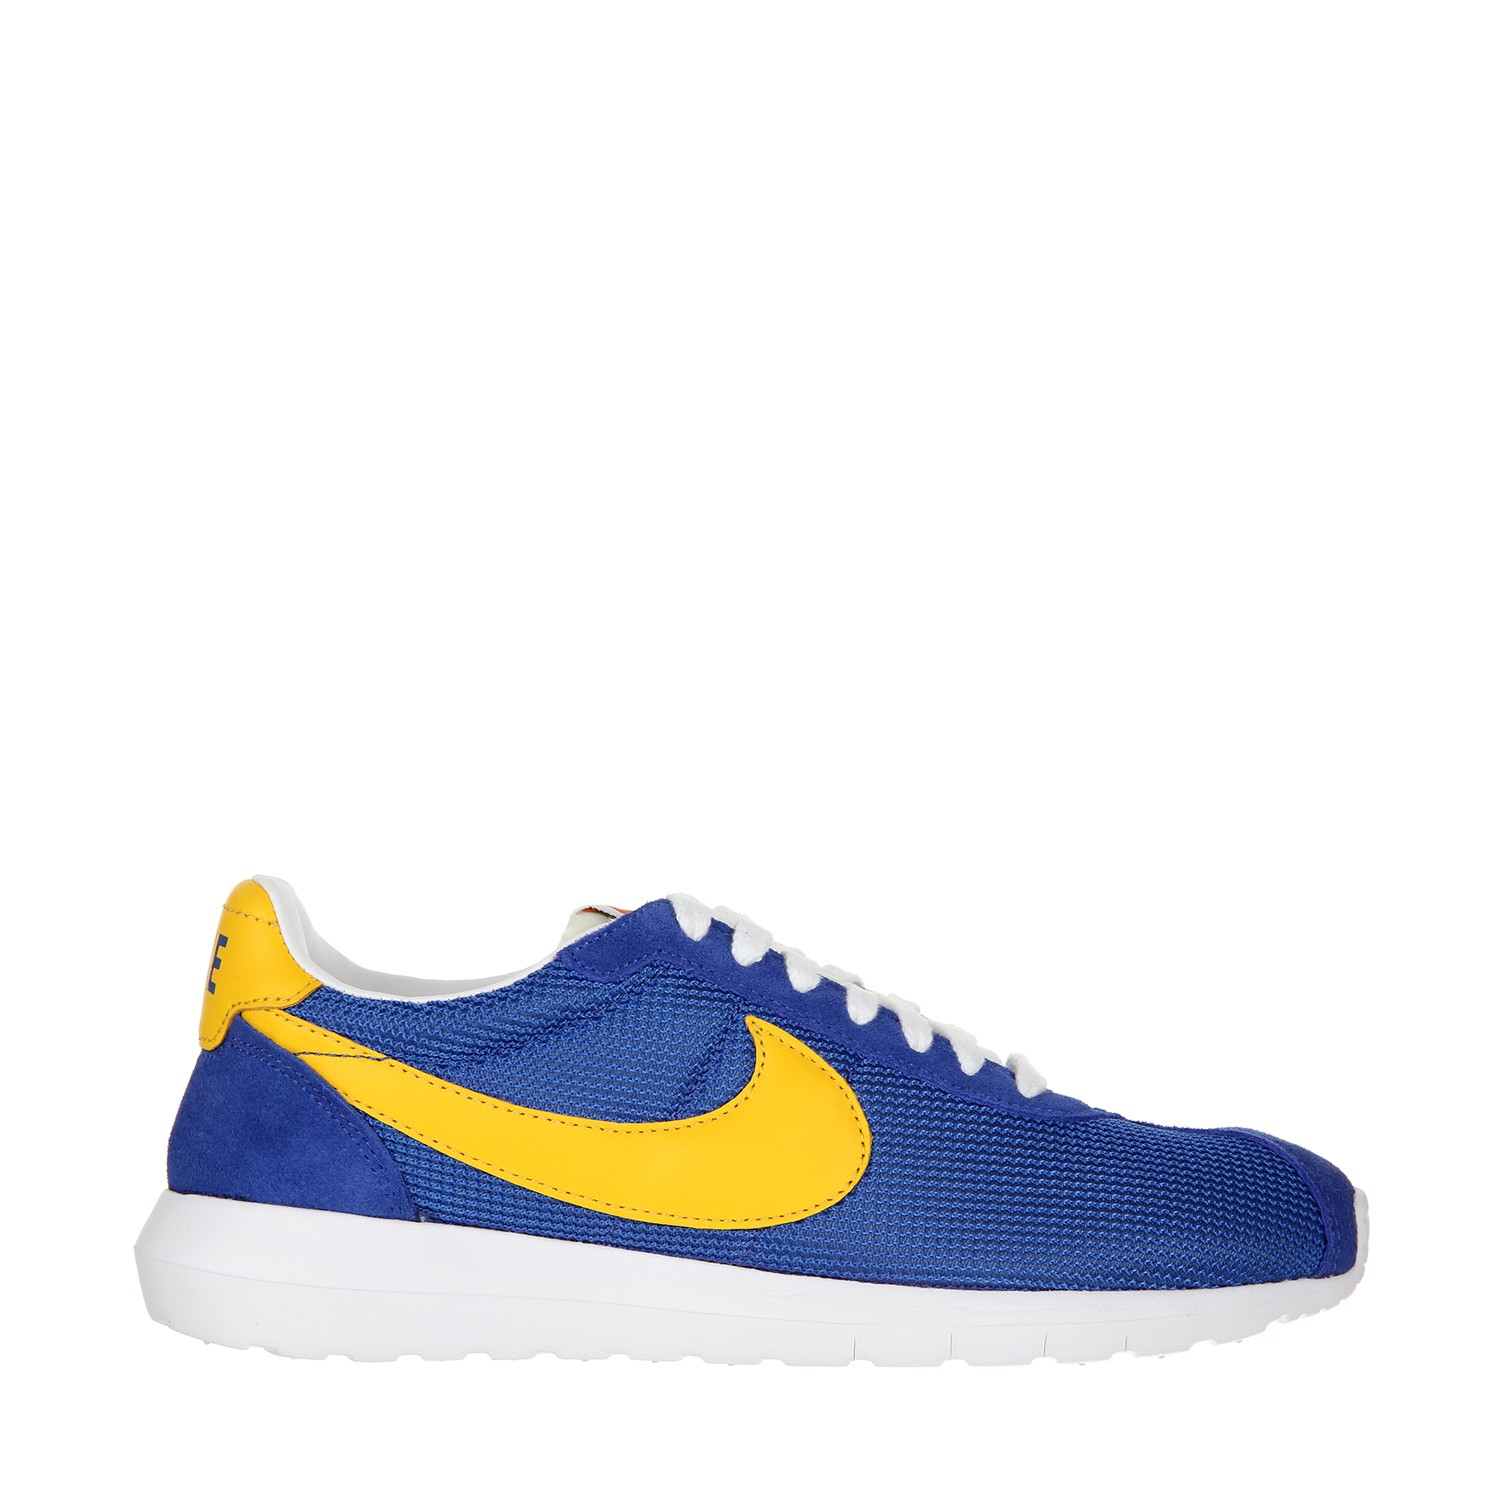 nike roshe ld 1000 in blue lyst. Black Bedroom Furniture Sets. Home Design Ideas